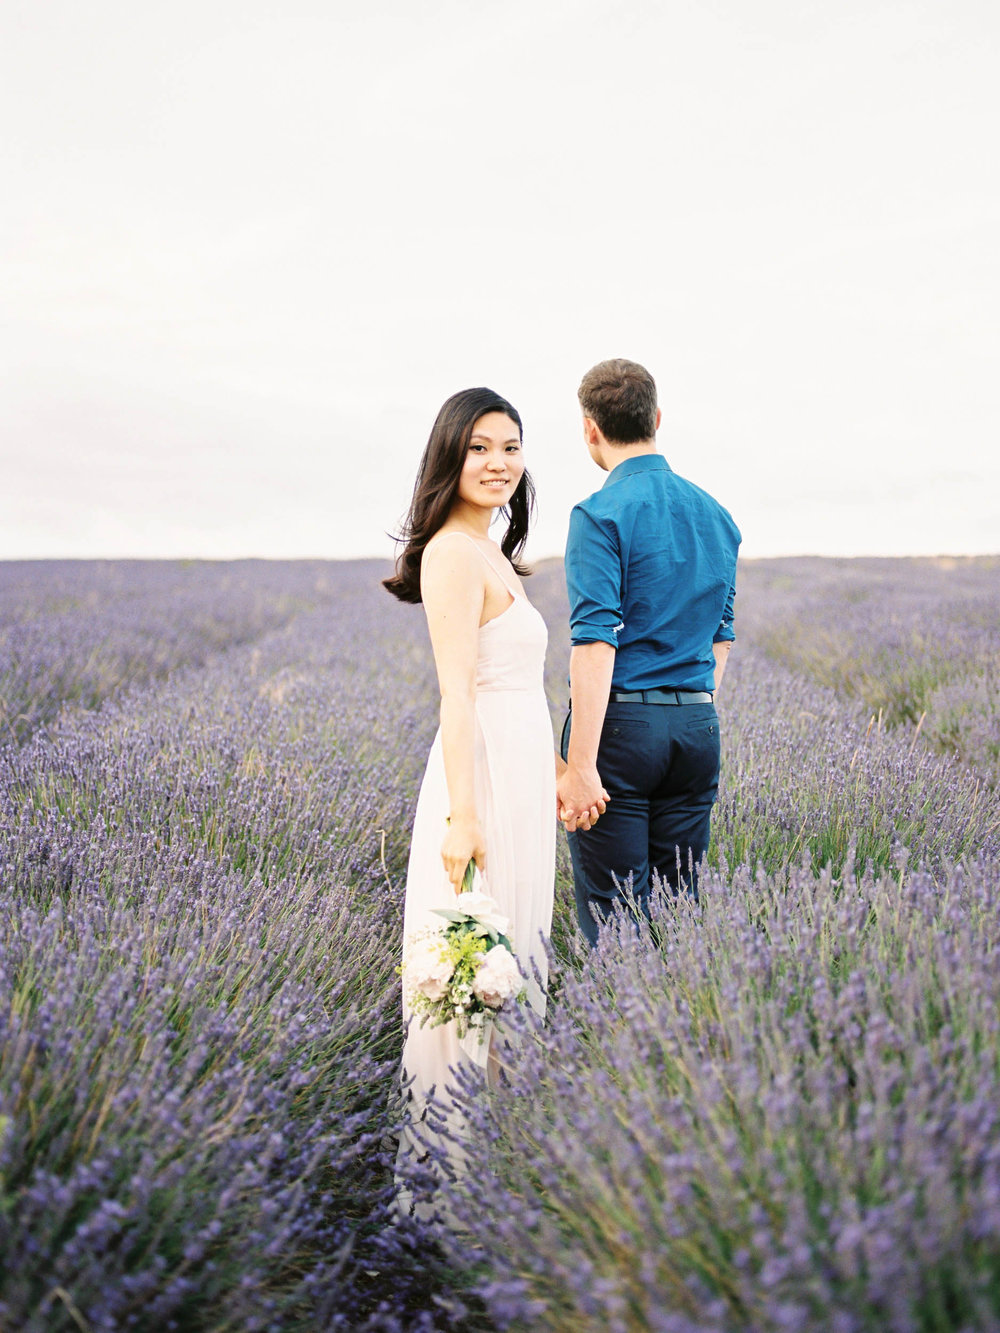 Amy O'Boyle Photography- Destination & UK Fine Art Film Wedding Photographer- Hitchin Lavender Engagement Shoot-26.jpg